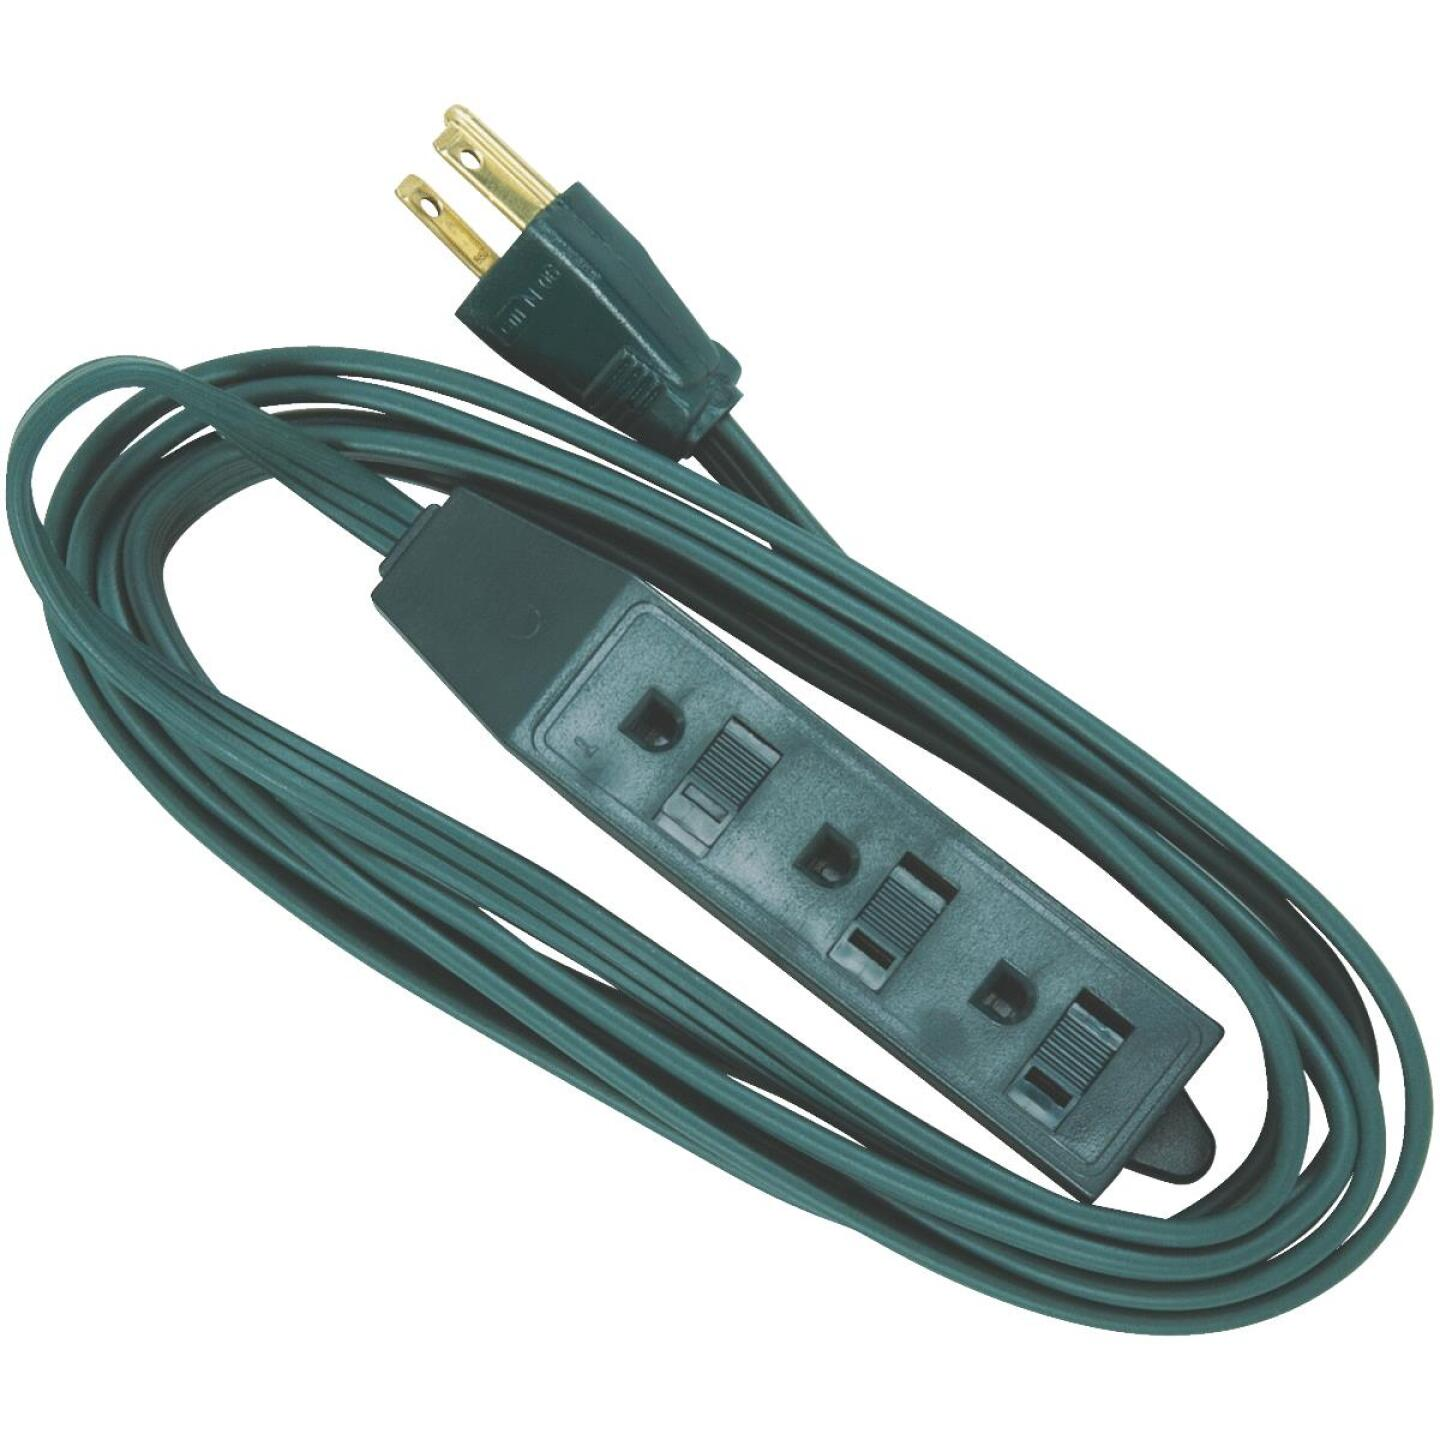 Do it 9 Ft. 16/3 Interior Extension Cord with Powerblock Image 1